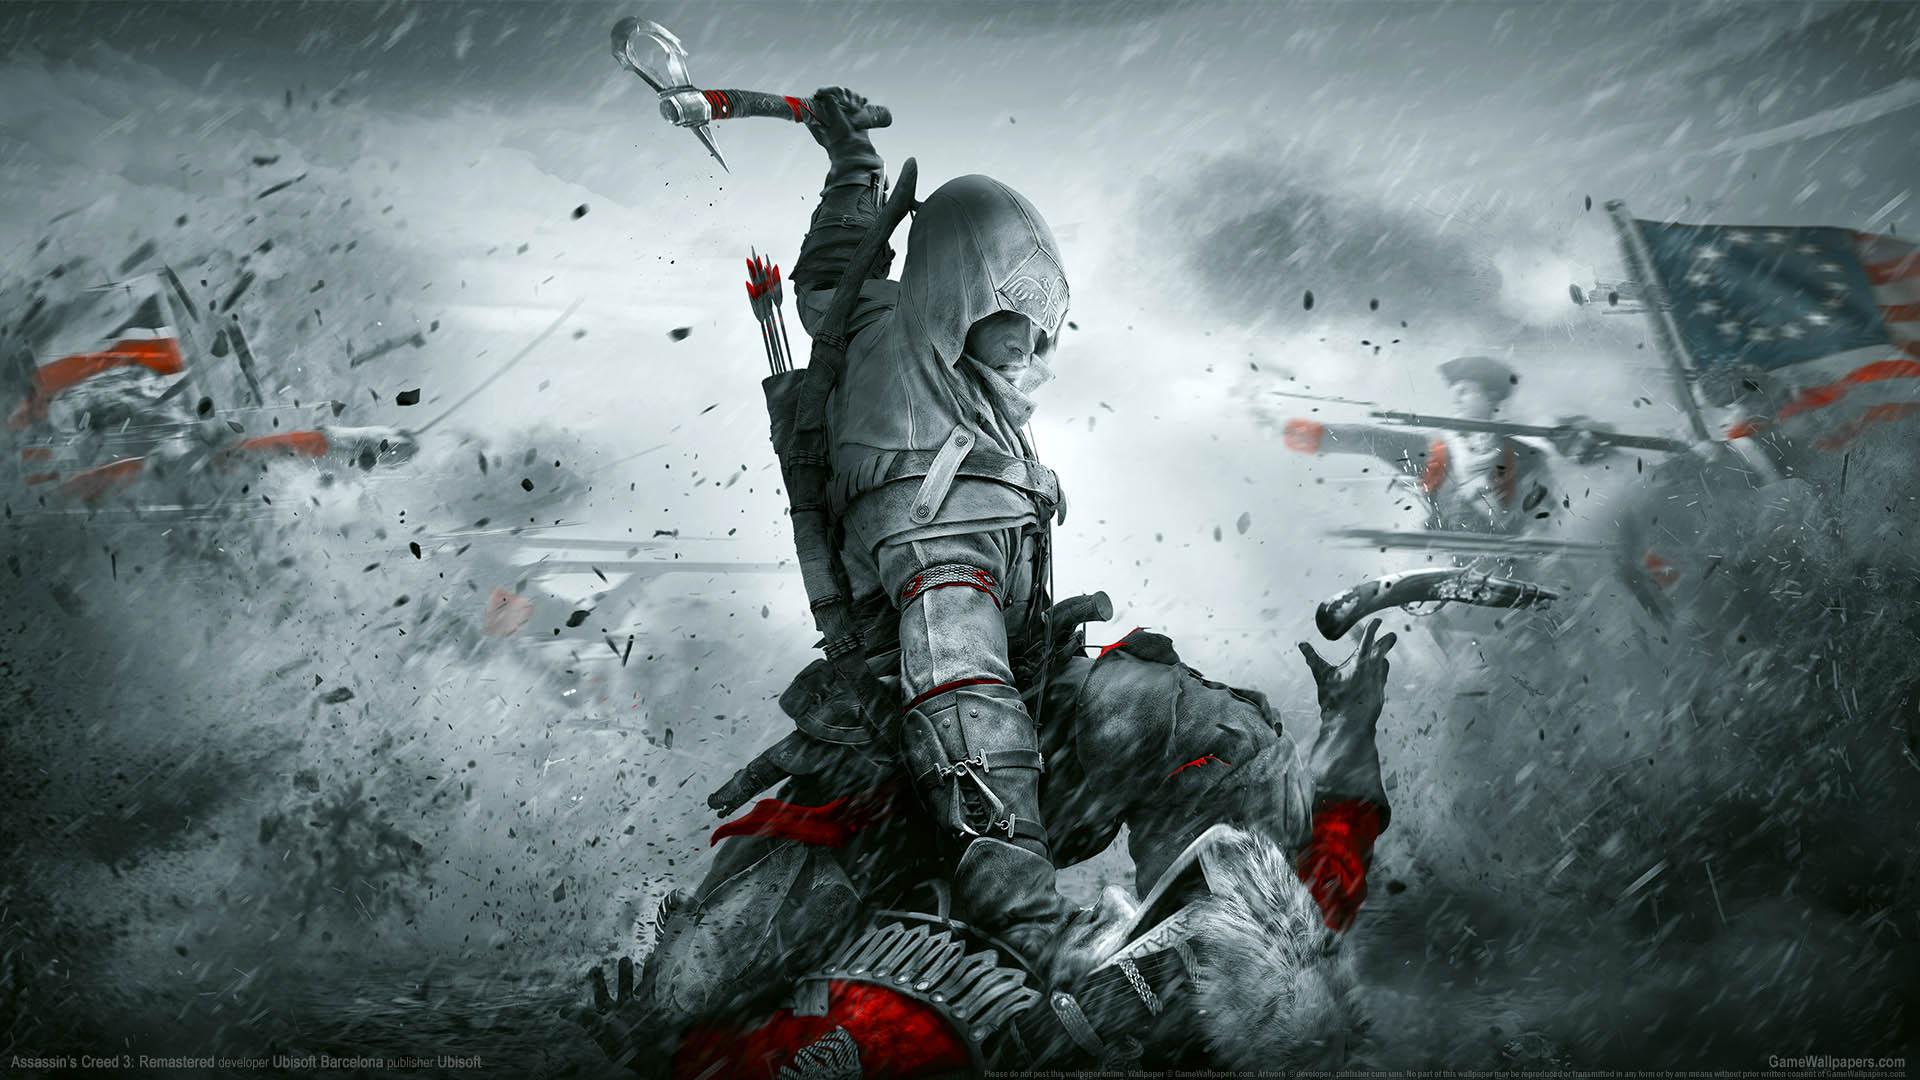 Assassin's Creed III: Remastered Hintergrundbild 01 1920x1080